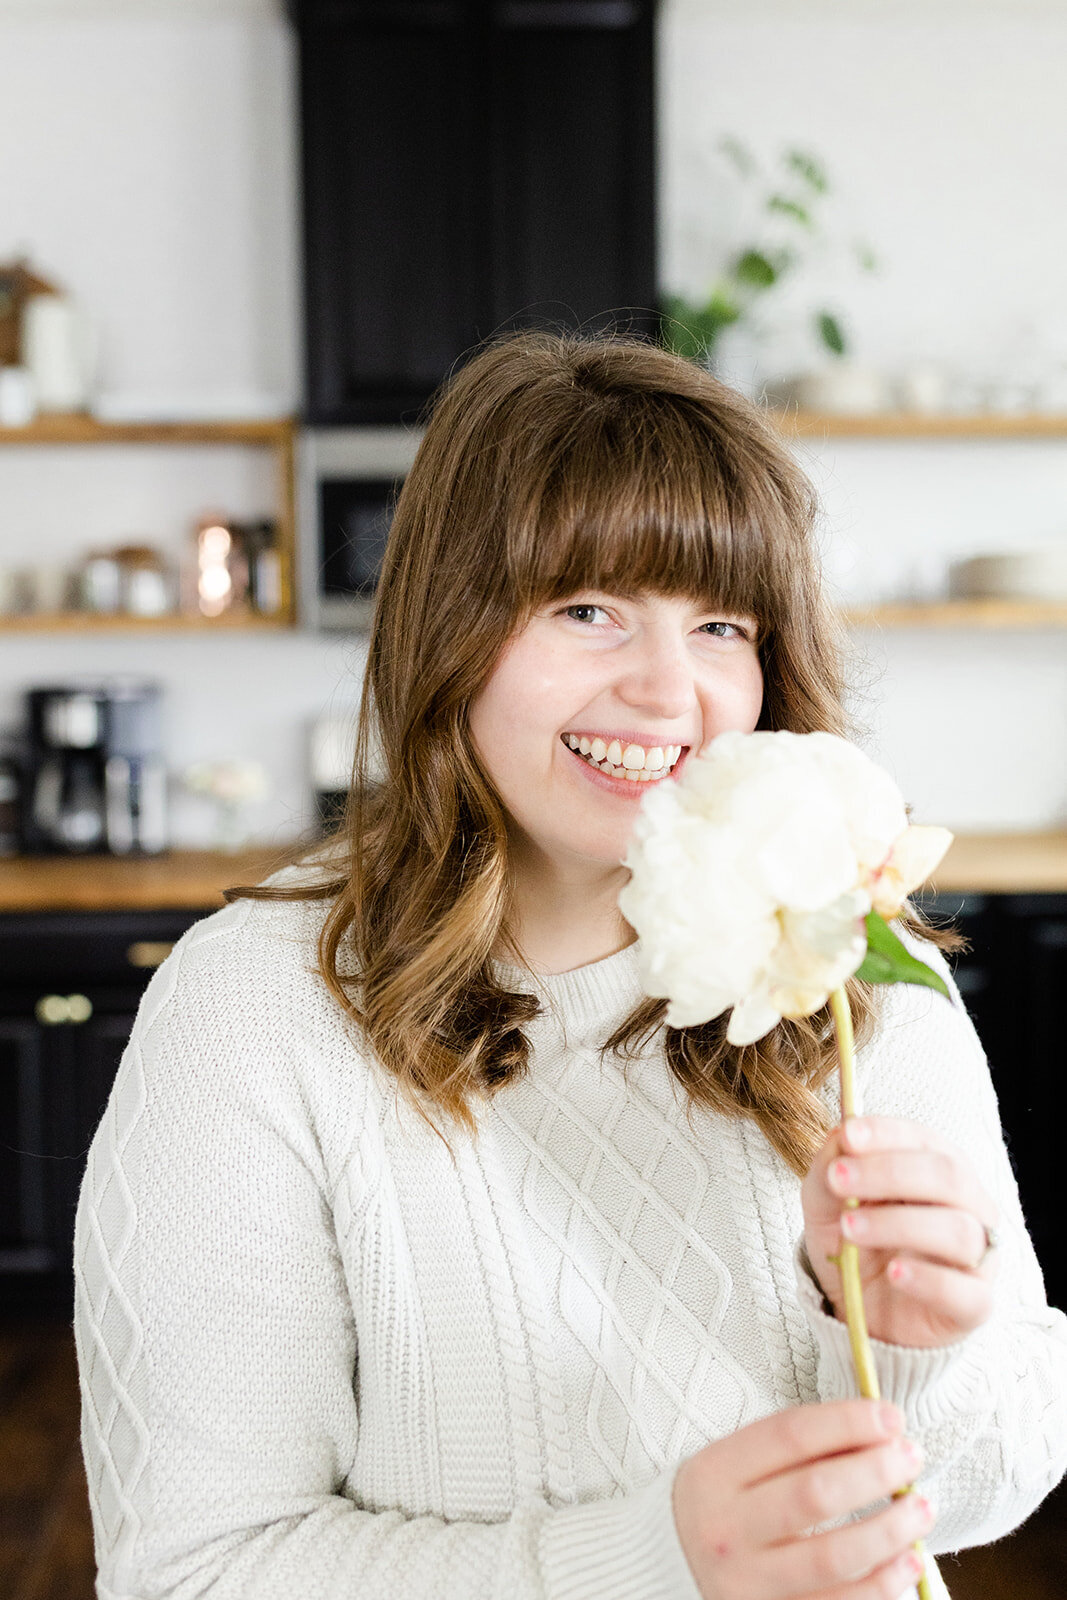 Hannah posing with a flower for branding photographer